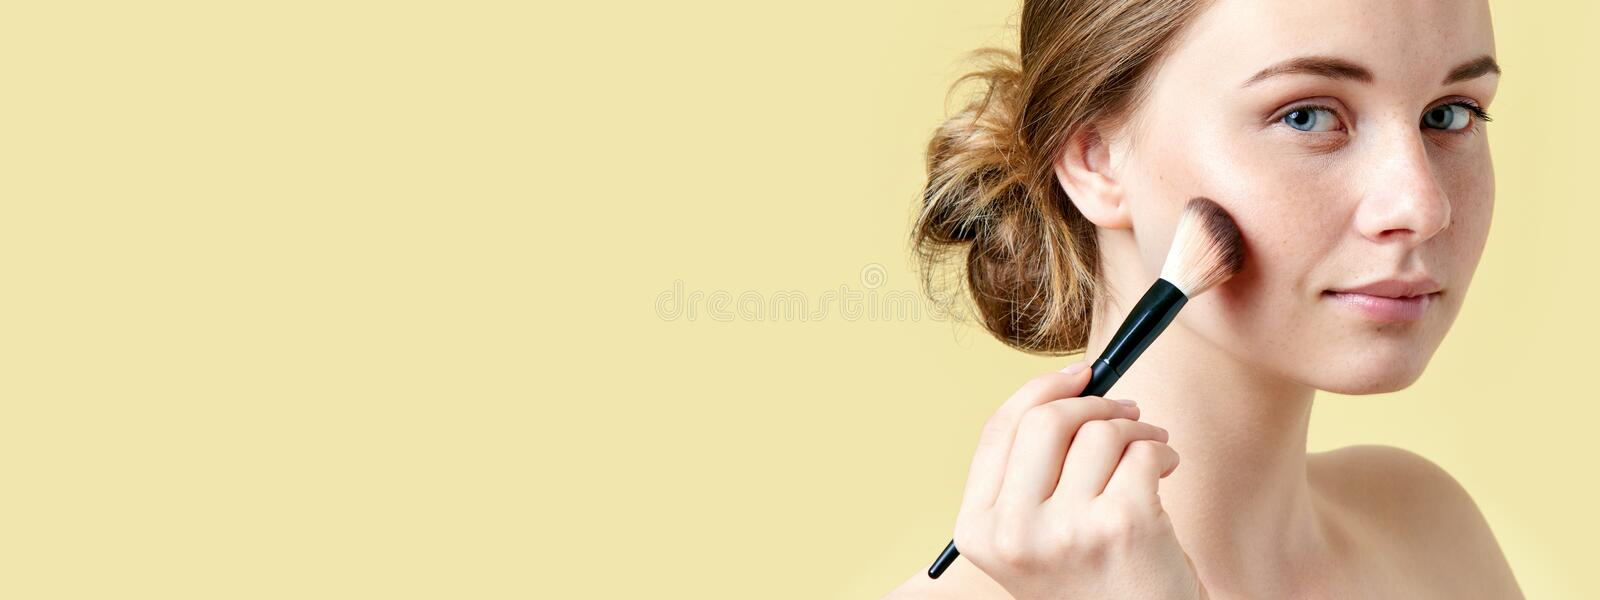 Beautiful young redhead woman with freckles contouring her cheekbones using make up brush. Beauty portrait royalty free stock photo